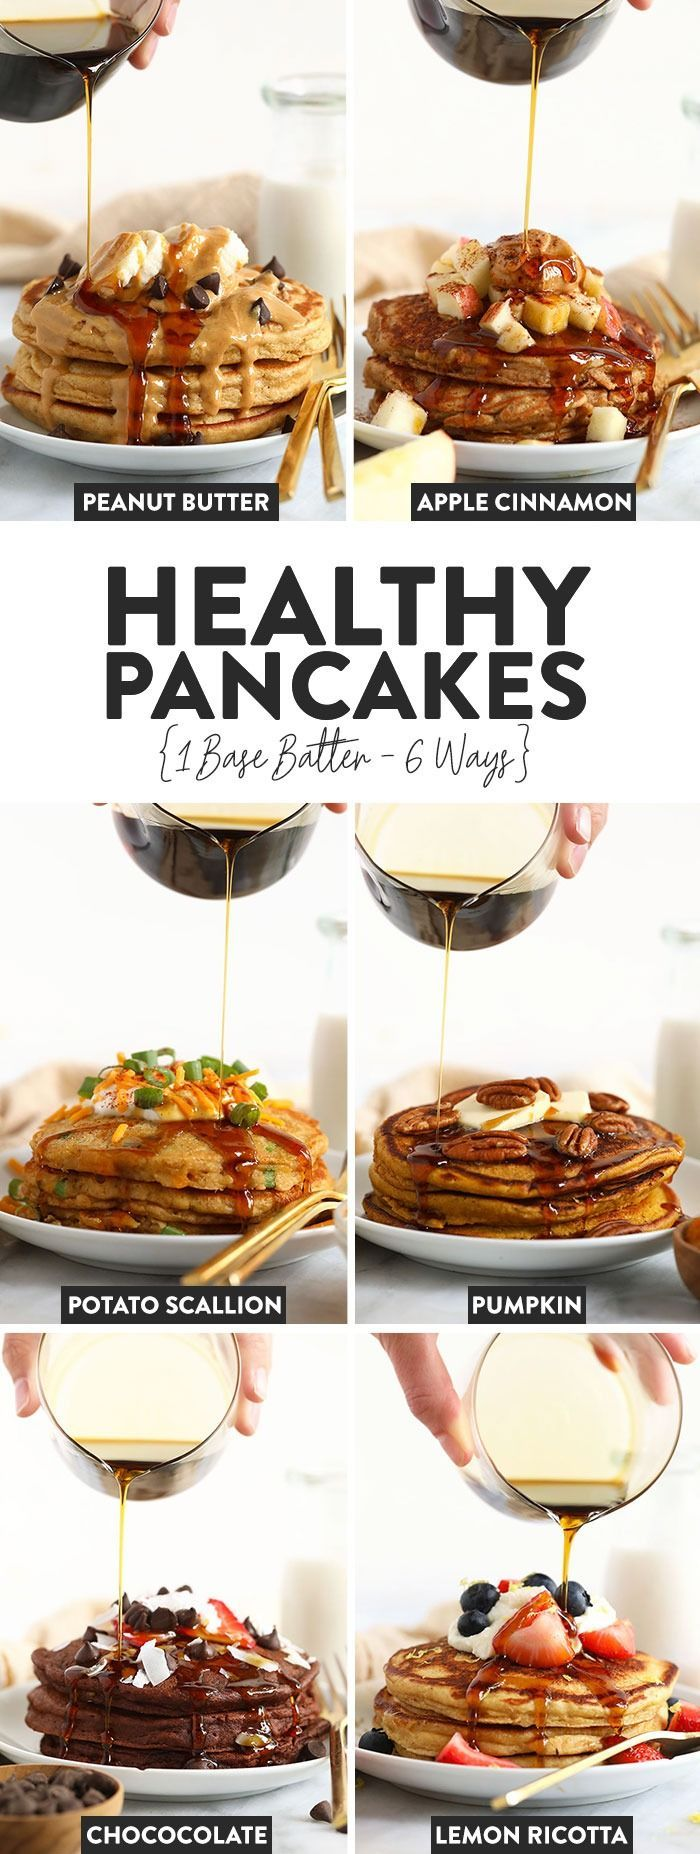 If you love pancakes, add this healthy pancake recipe to the list! This is our favorite pancake base recipe + 6 healthy pancake recipes you can make w...